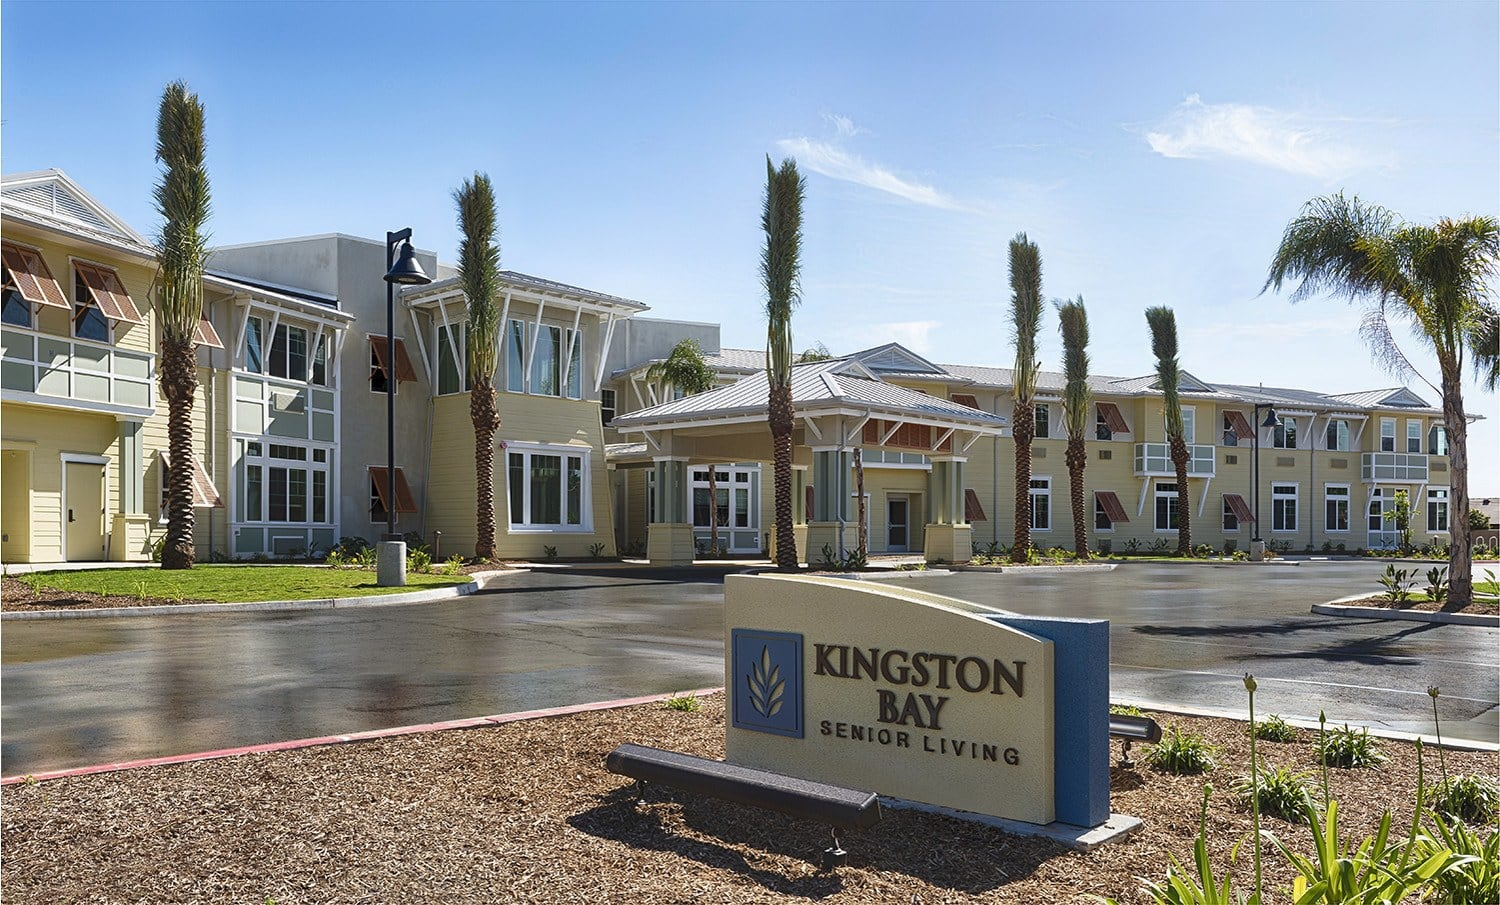 Welcome to Kingston Bay Senior Living